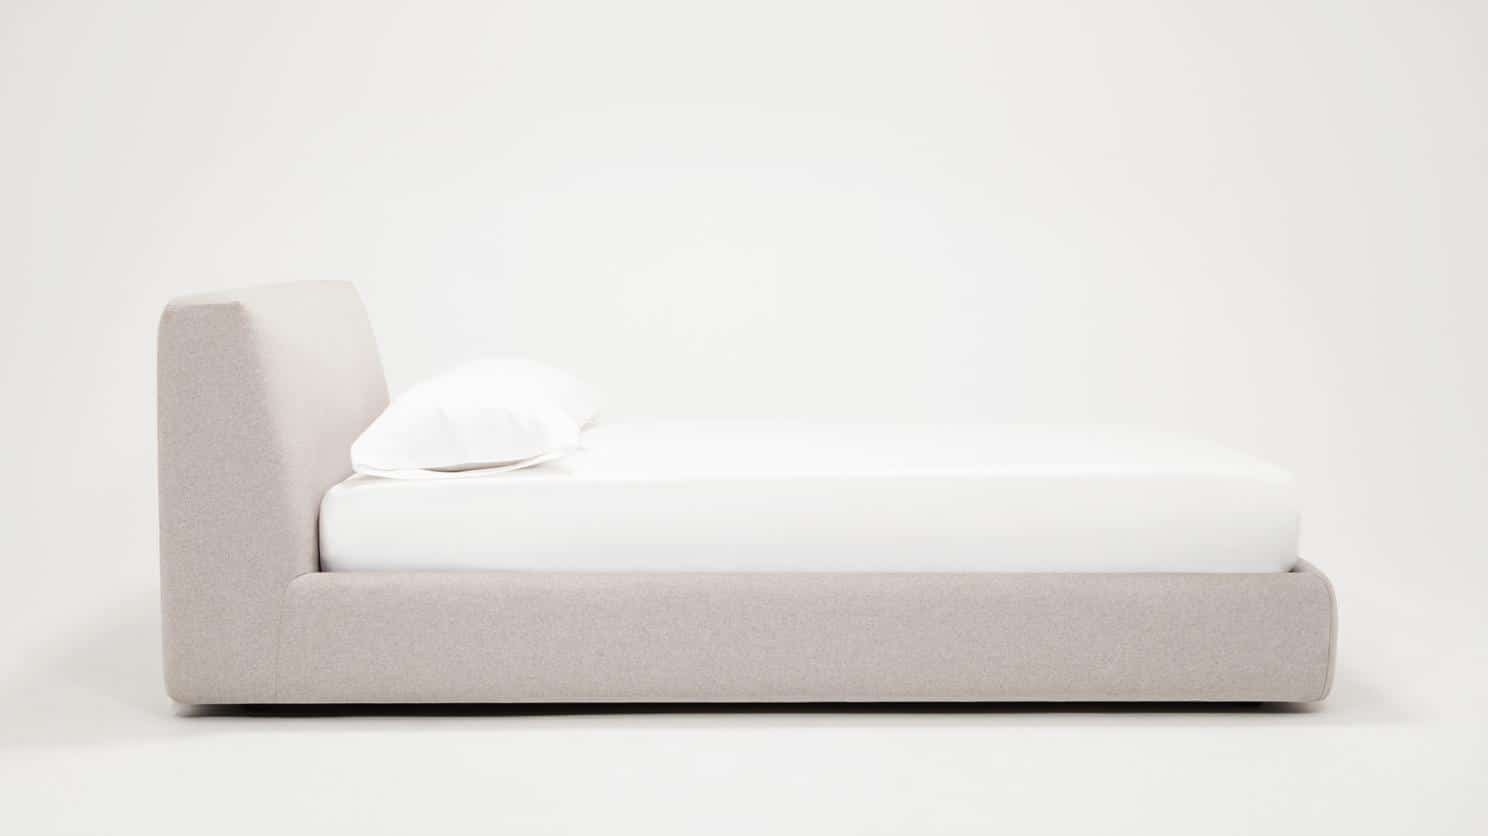 cello bed lana sand side 01.jpg2